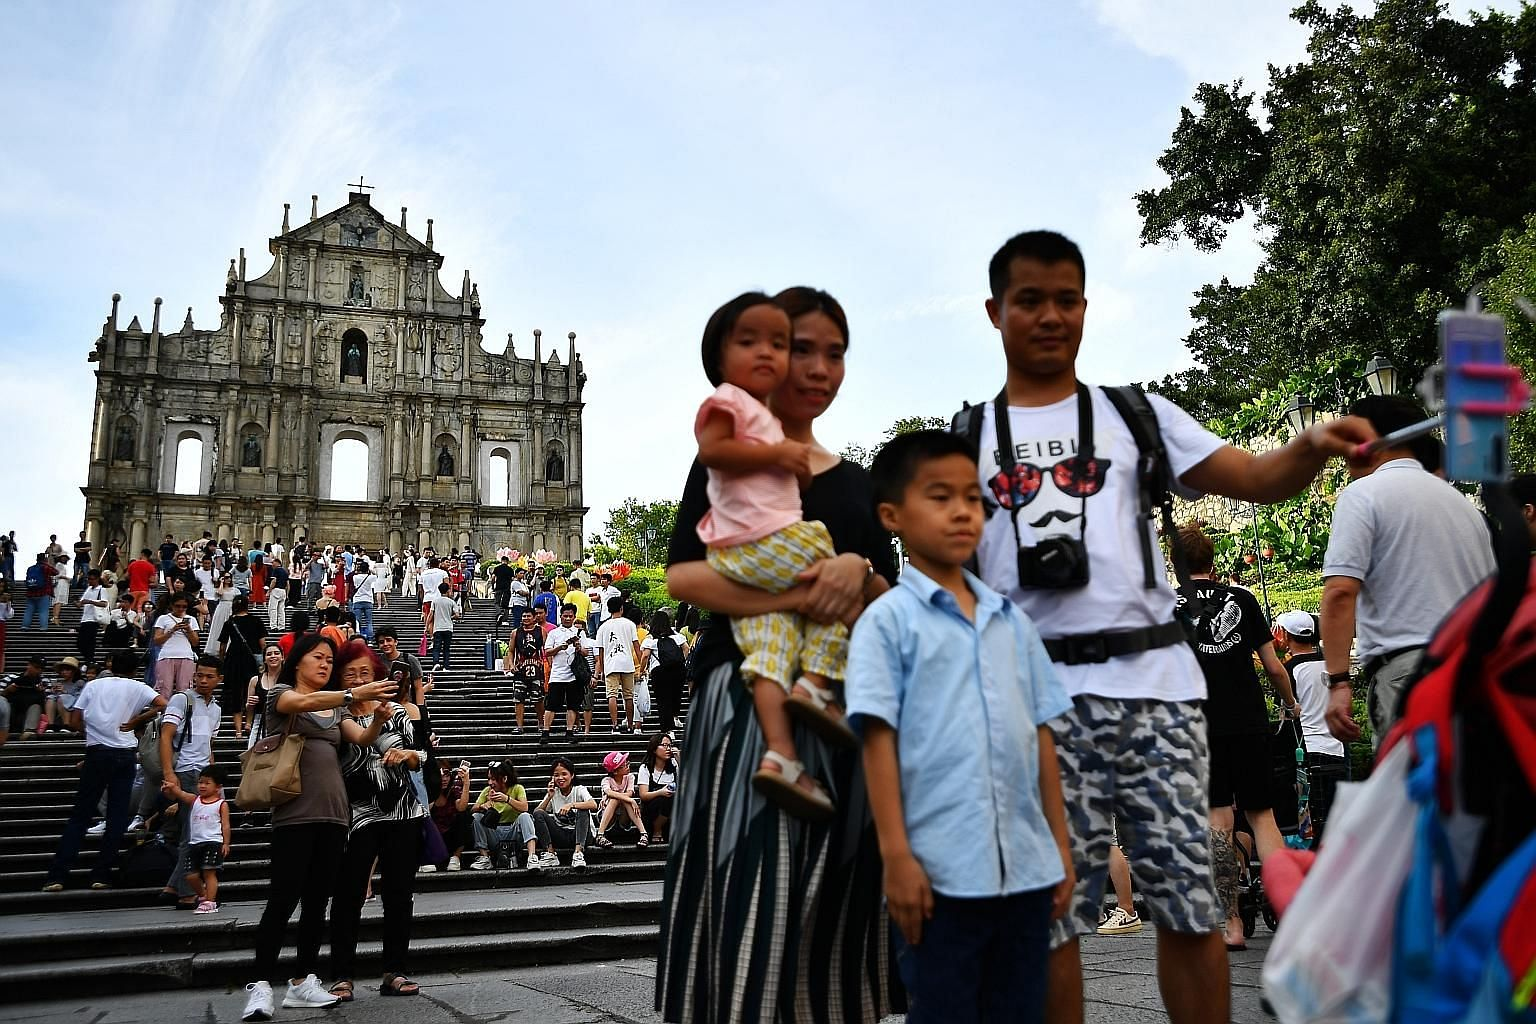 Tourists at the Ruins of St Paul's, officially listed as part of the Historic Centre of Macau, a Unesco World Heritage Site. Many visitors are steering clear of the world's biggest gambling hub, worried over transport disruptions and safety concerns